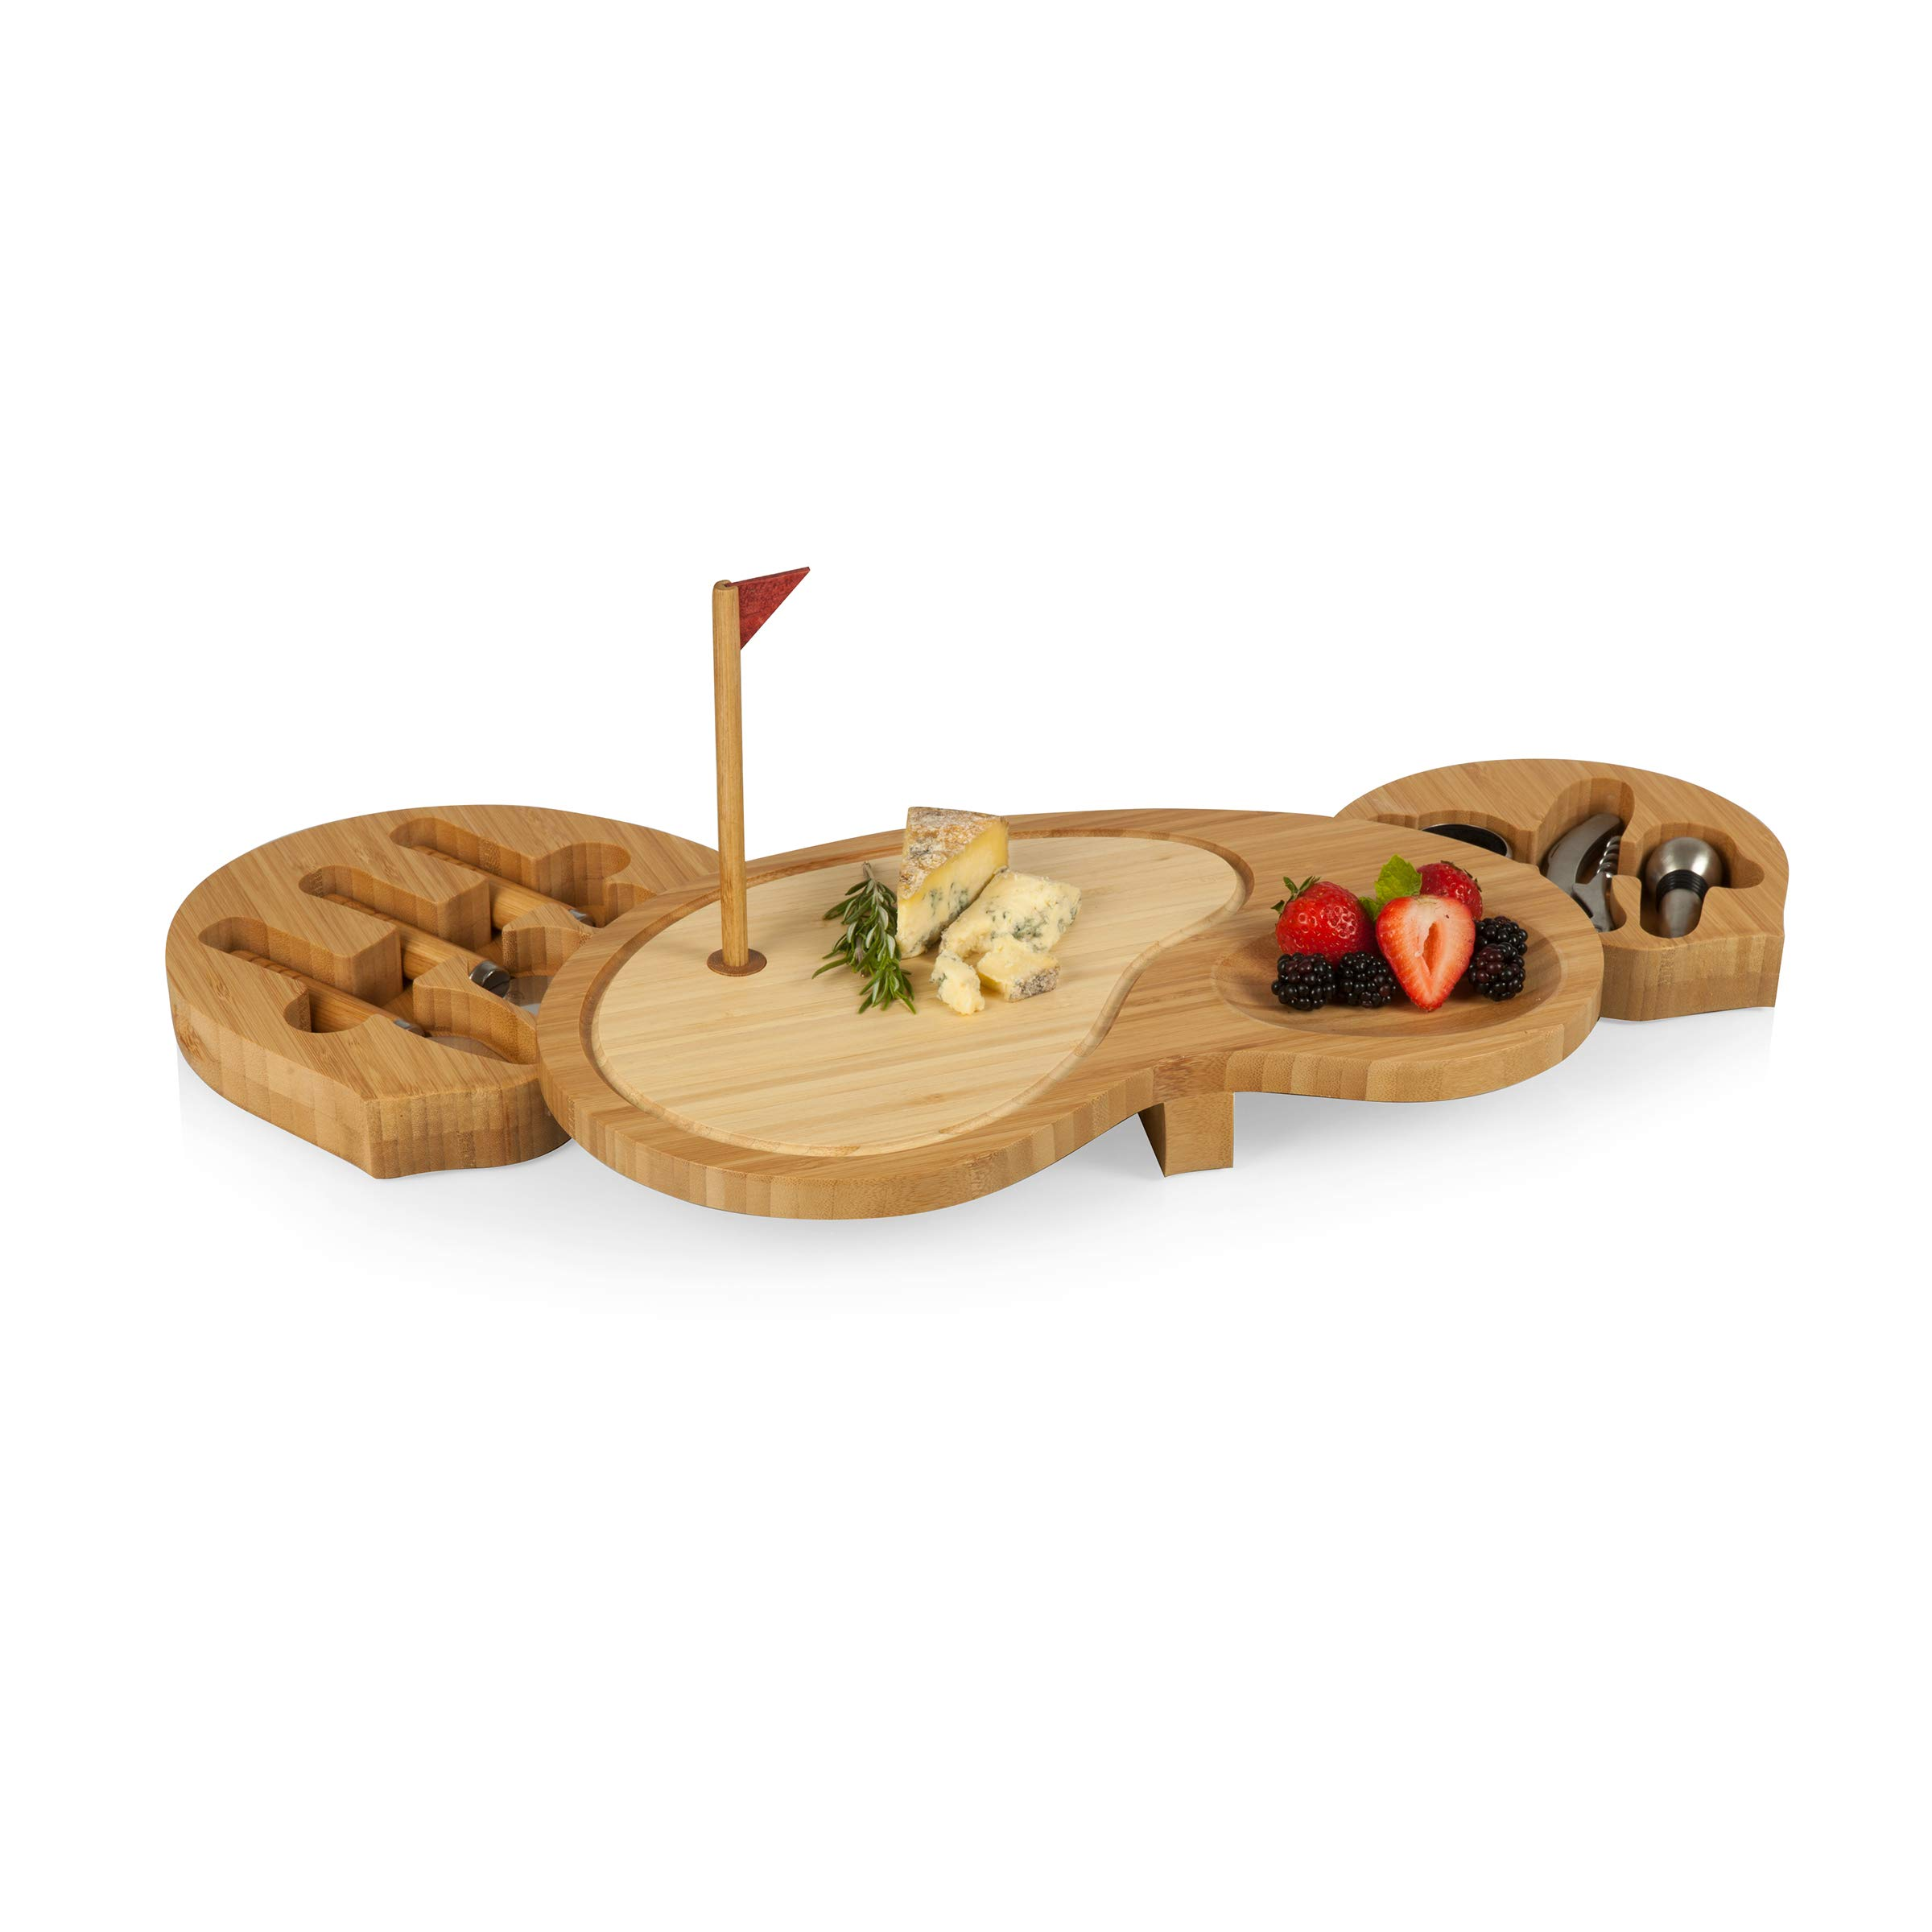 TOSCANA - a Picnic Time Brand Sand Trap Cheese Board and Tool Set by TOSCANA - a Picnic Time brand (Image #3)